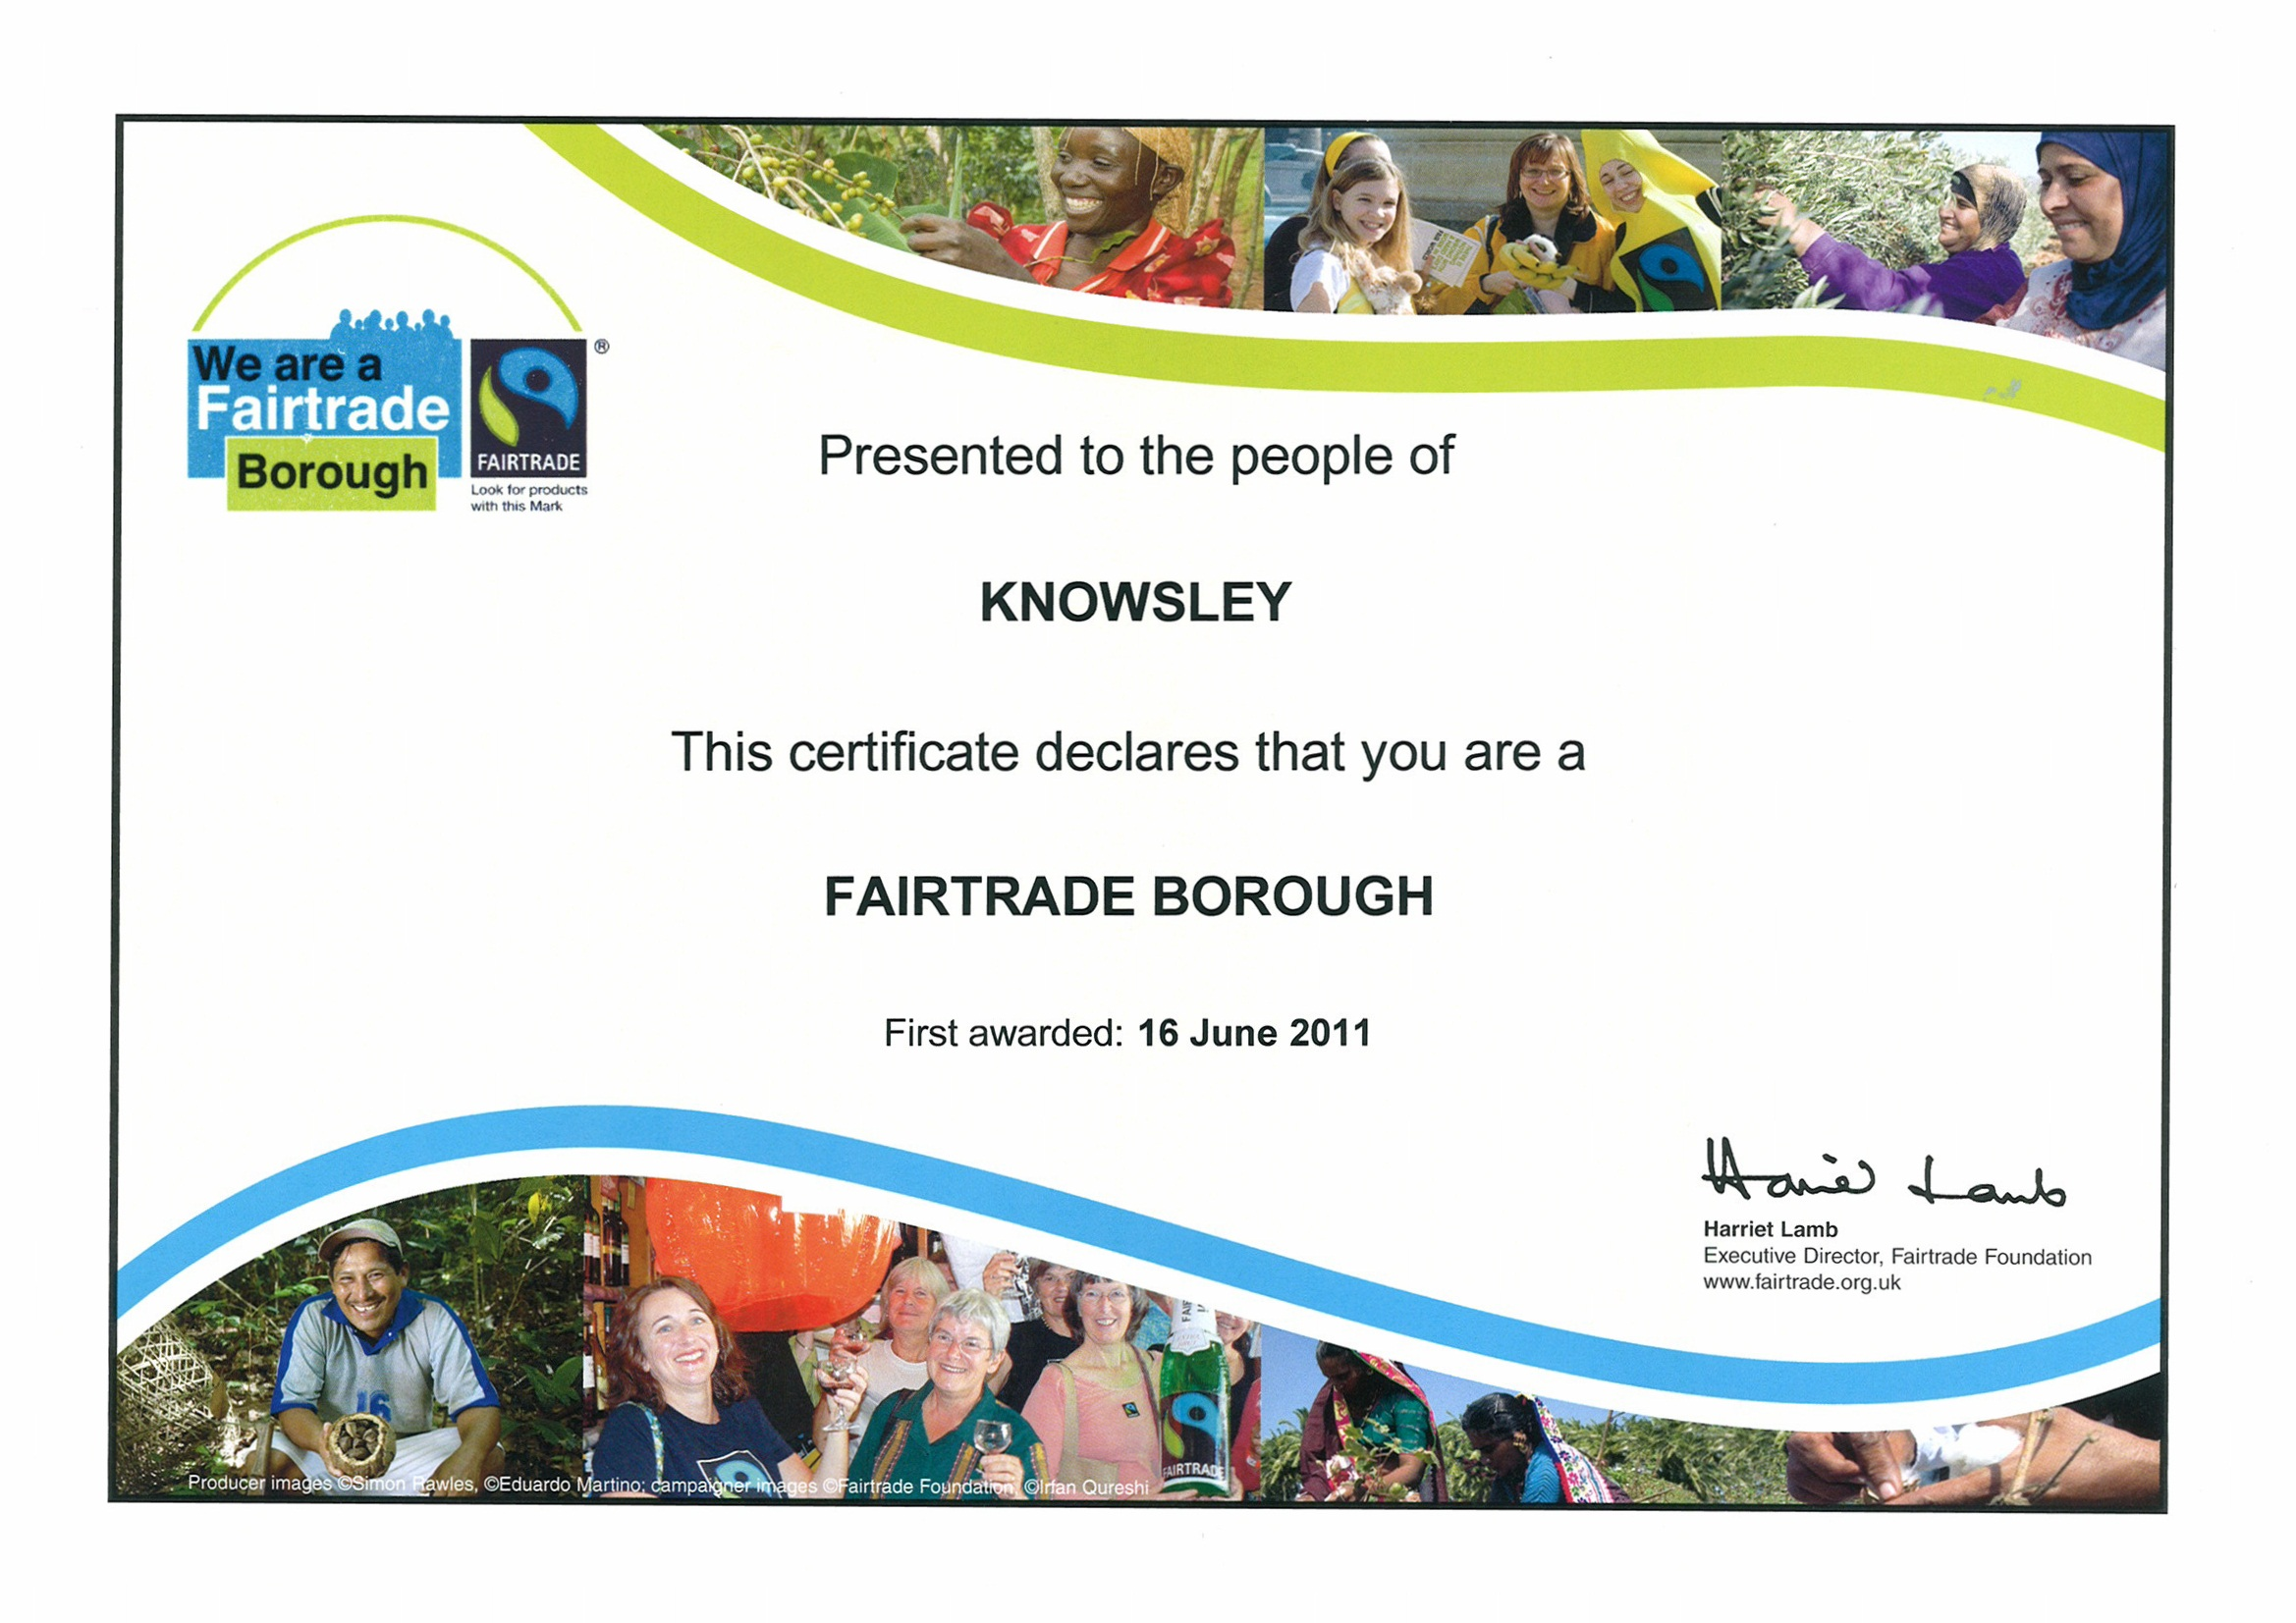 August 2011 Fairtrade Knowsley Celebrates At The Flower Show